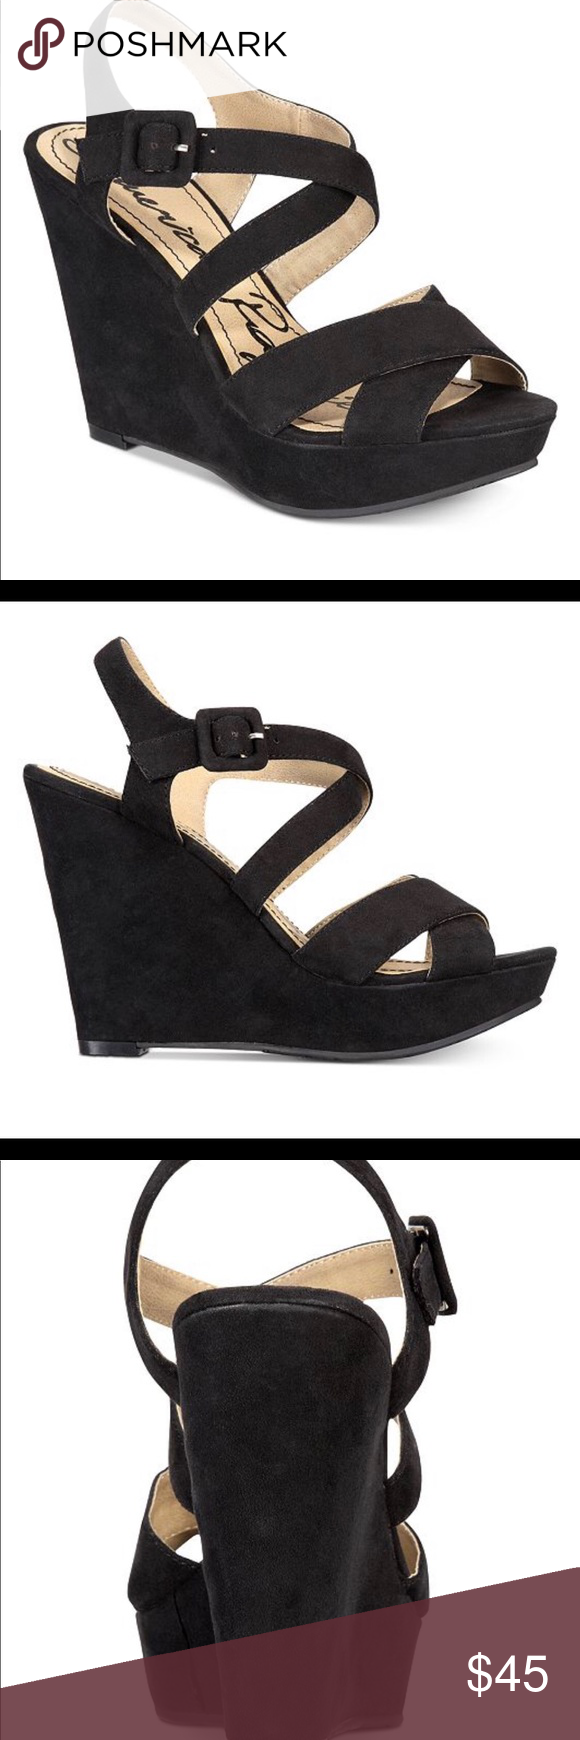 84b152e8b9e3 Black suede wedges make an offer!!! Super comfy and elegant